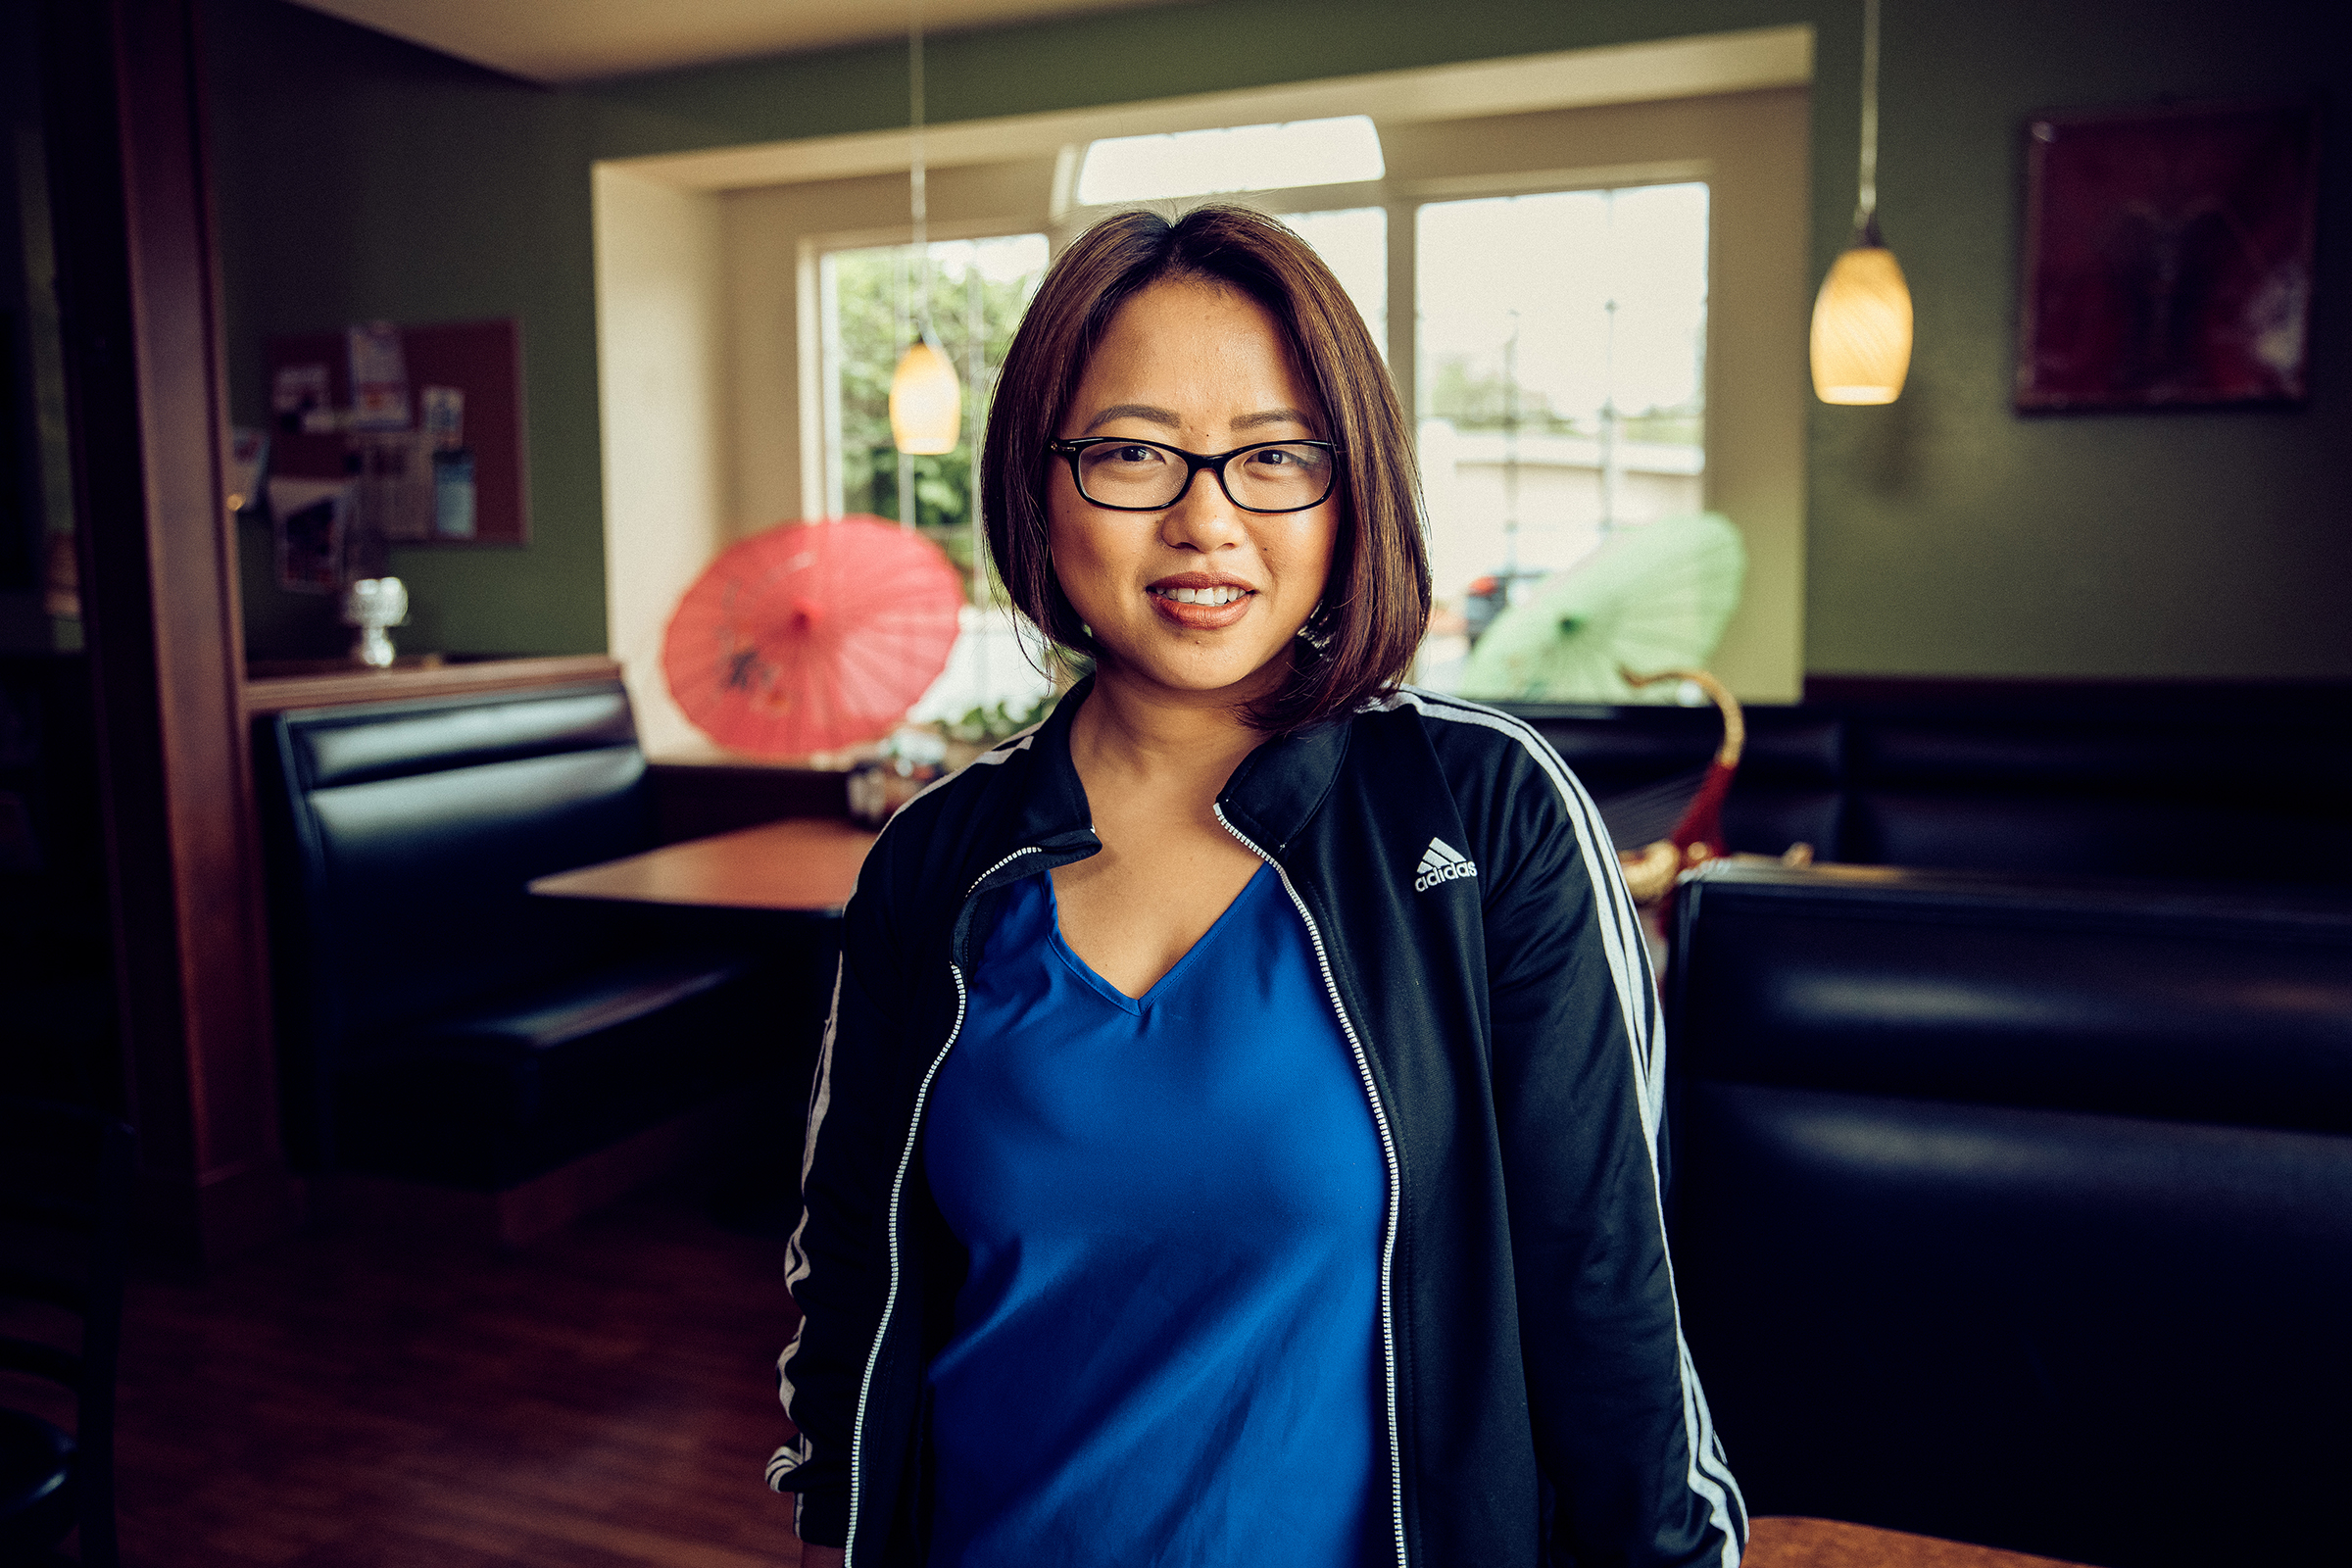 Amanda Sunthang, co-owner of Shwe Mandalay Burmese Cuisine restaurant, looking at the camera with a smile in Battle Creek, Michigan.